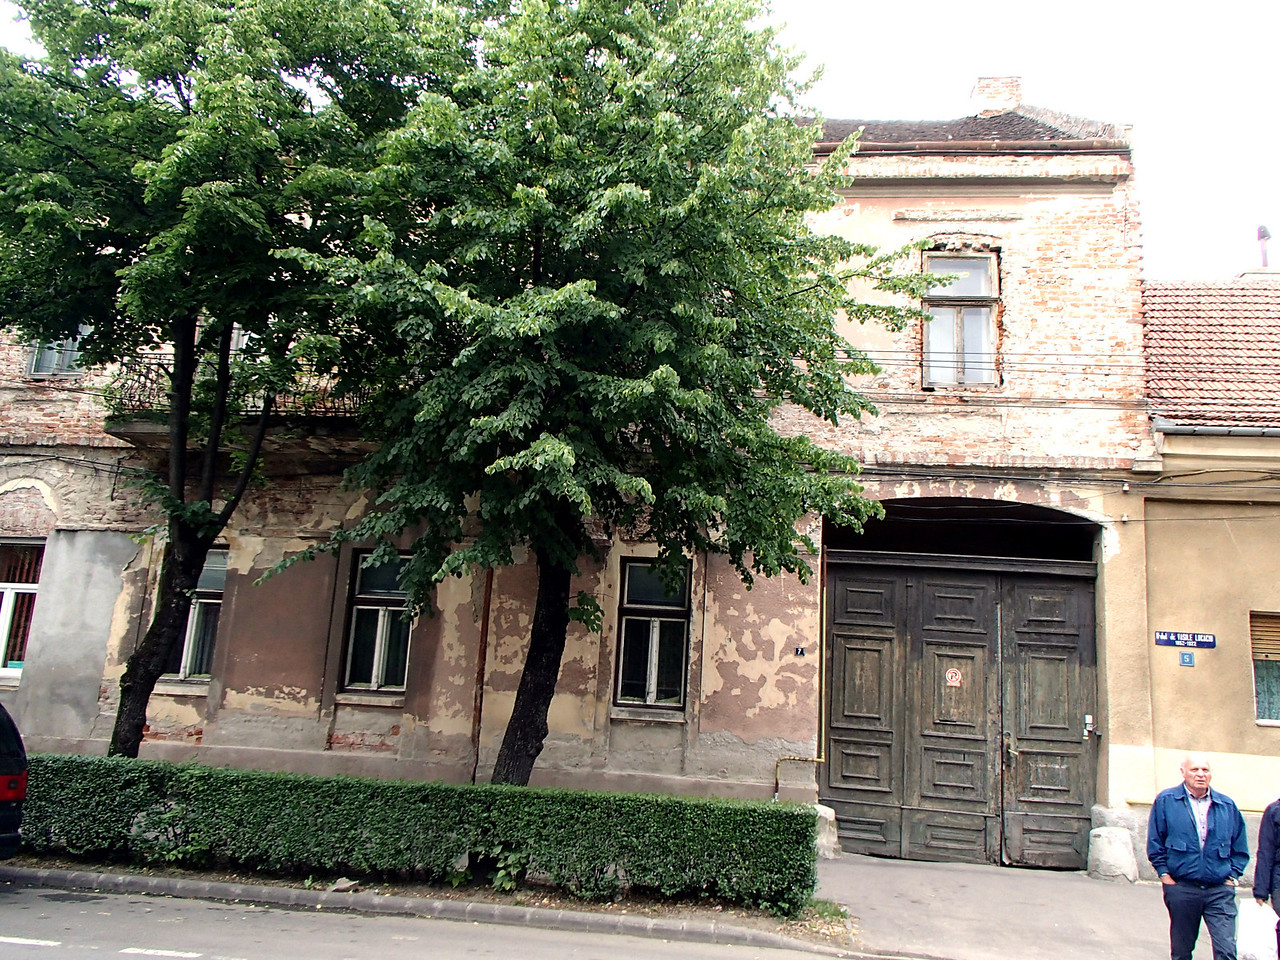 0117 Szatmar Farkas house Arpad  utca 11, or Strade republicii 11 both name and number have changed